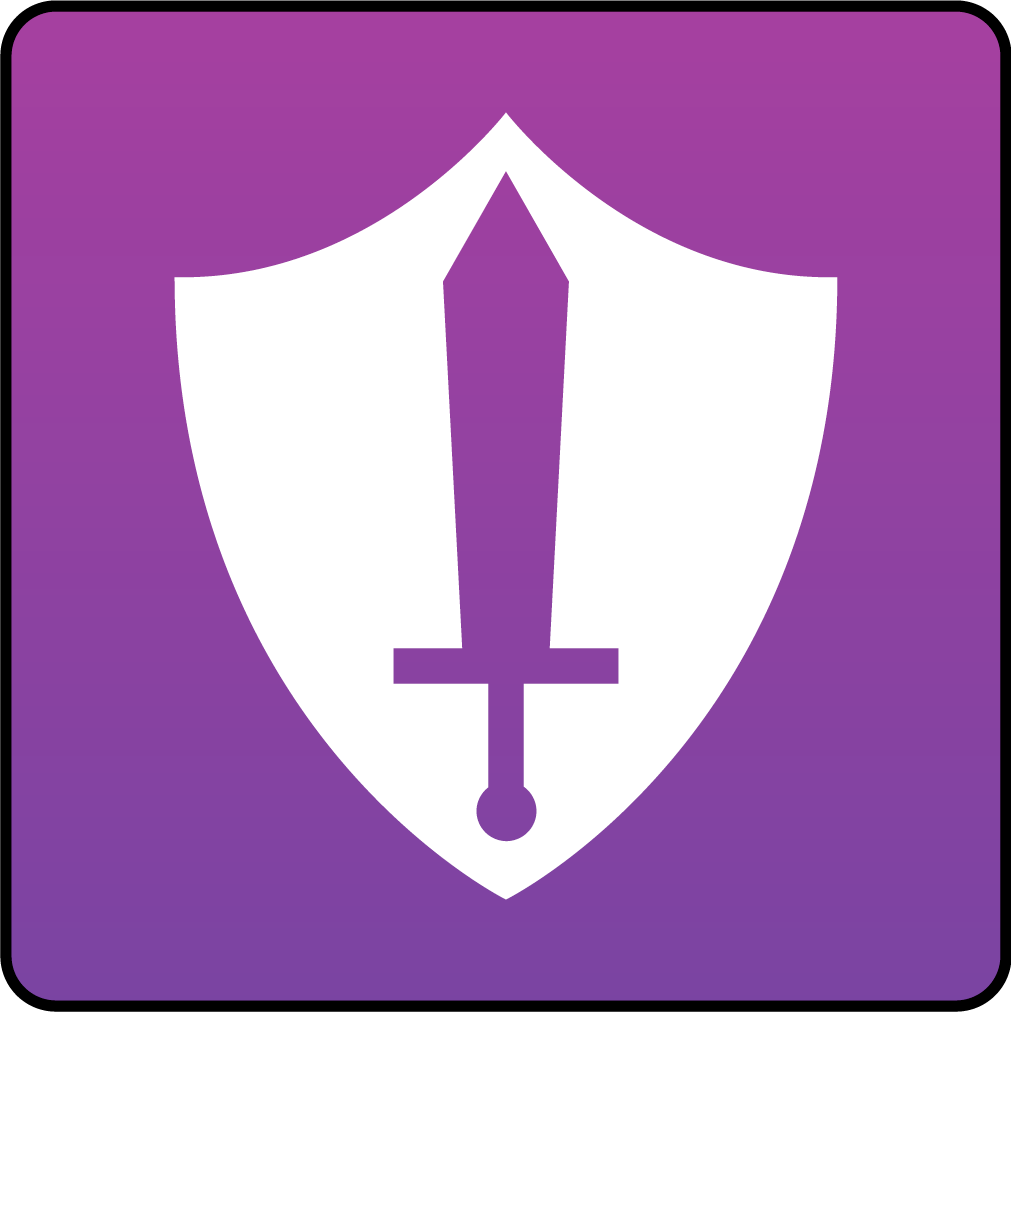 VL SwordShield logo